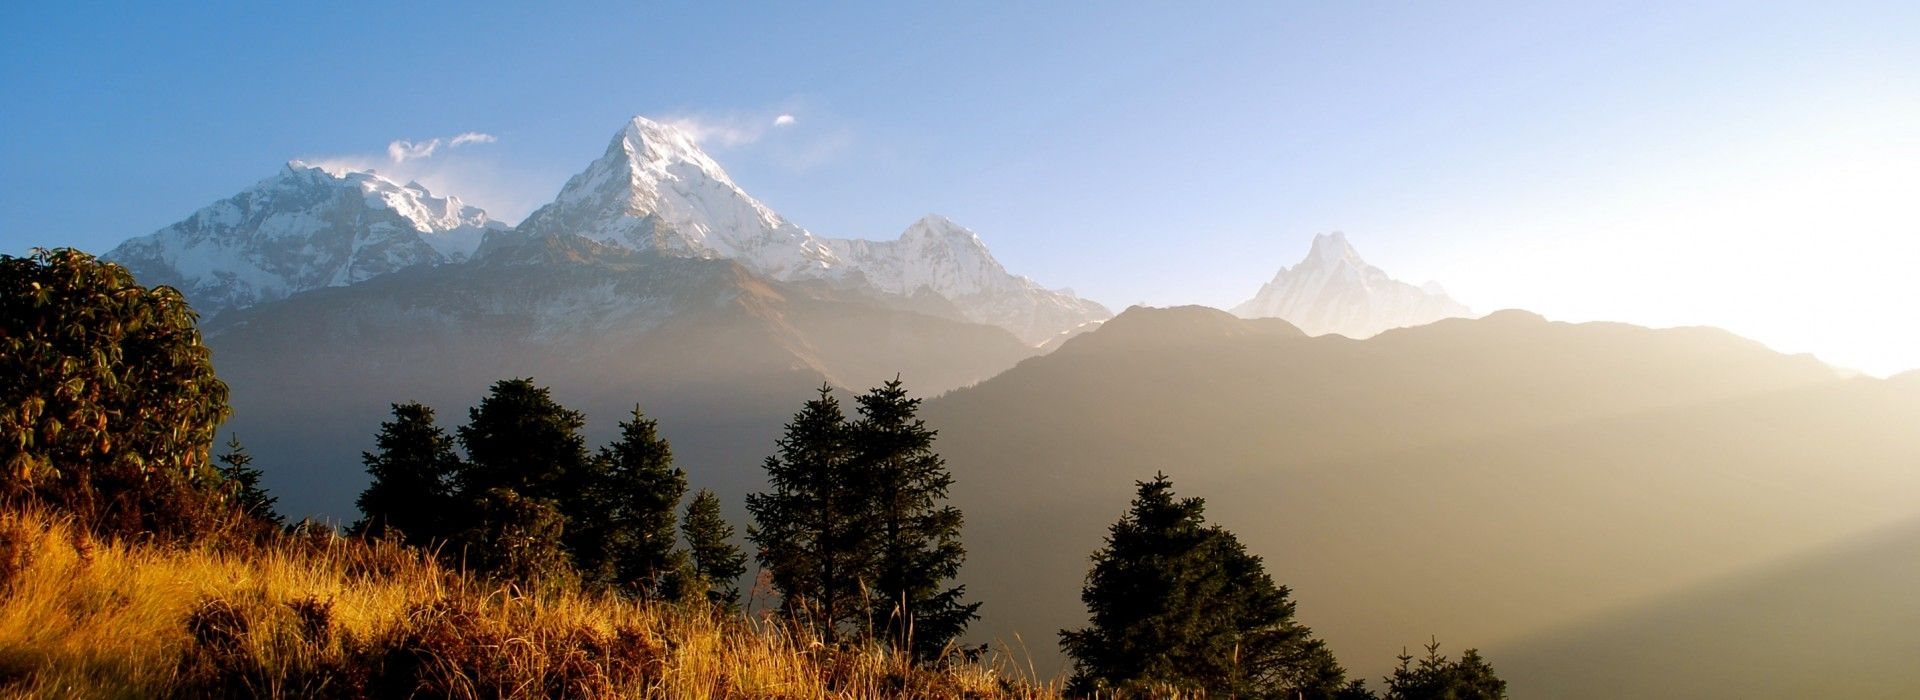 Trekking Tours in Manaslu trek